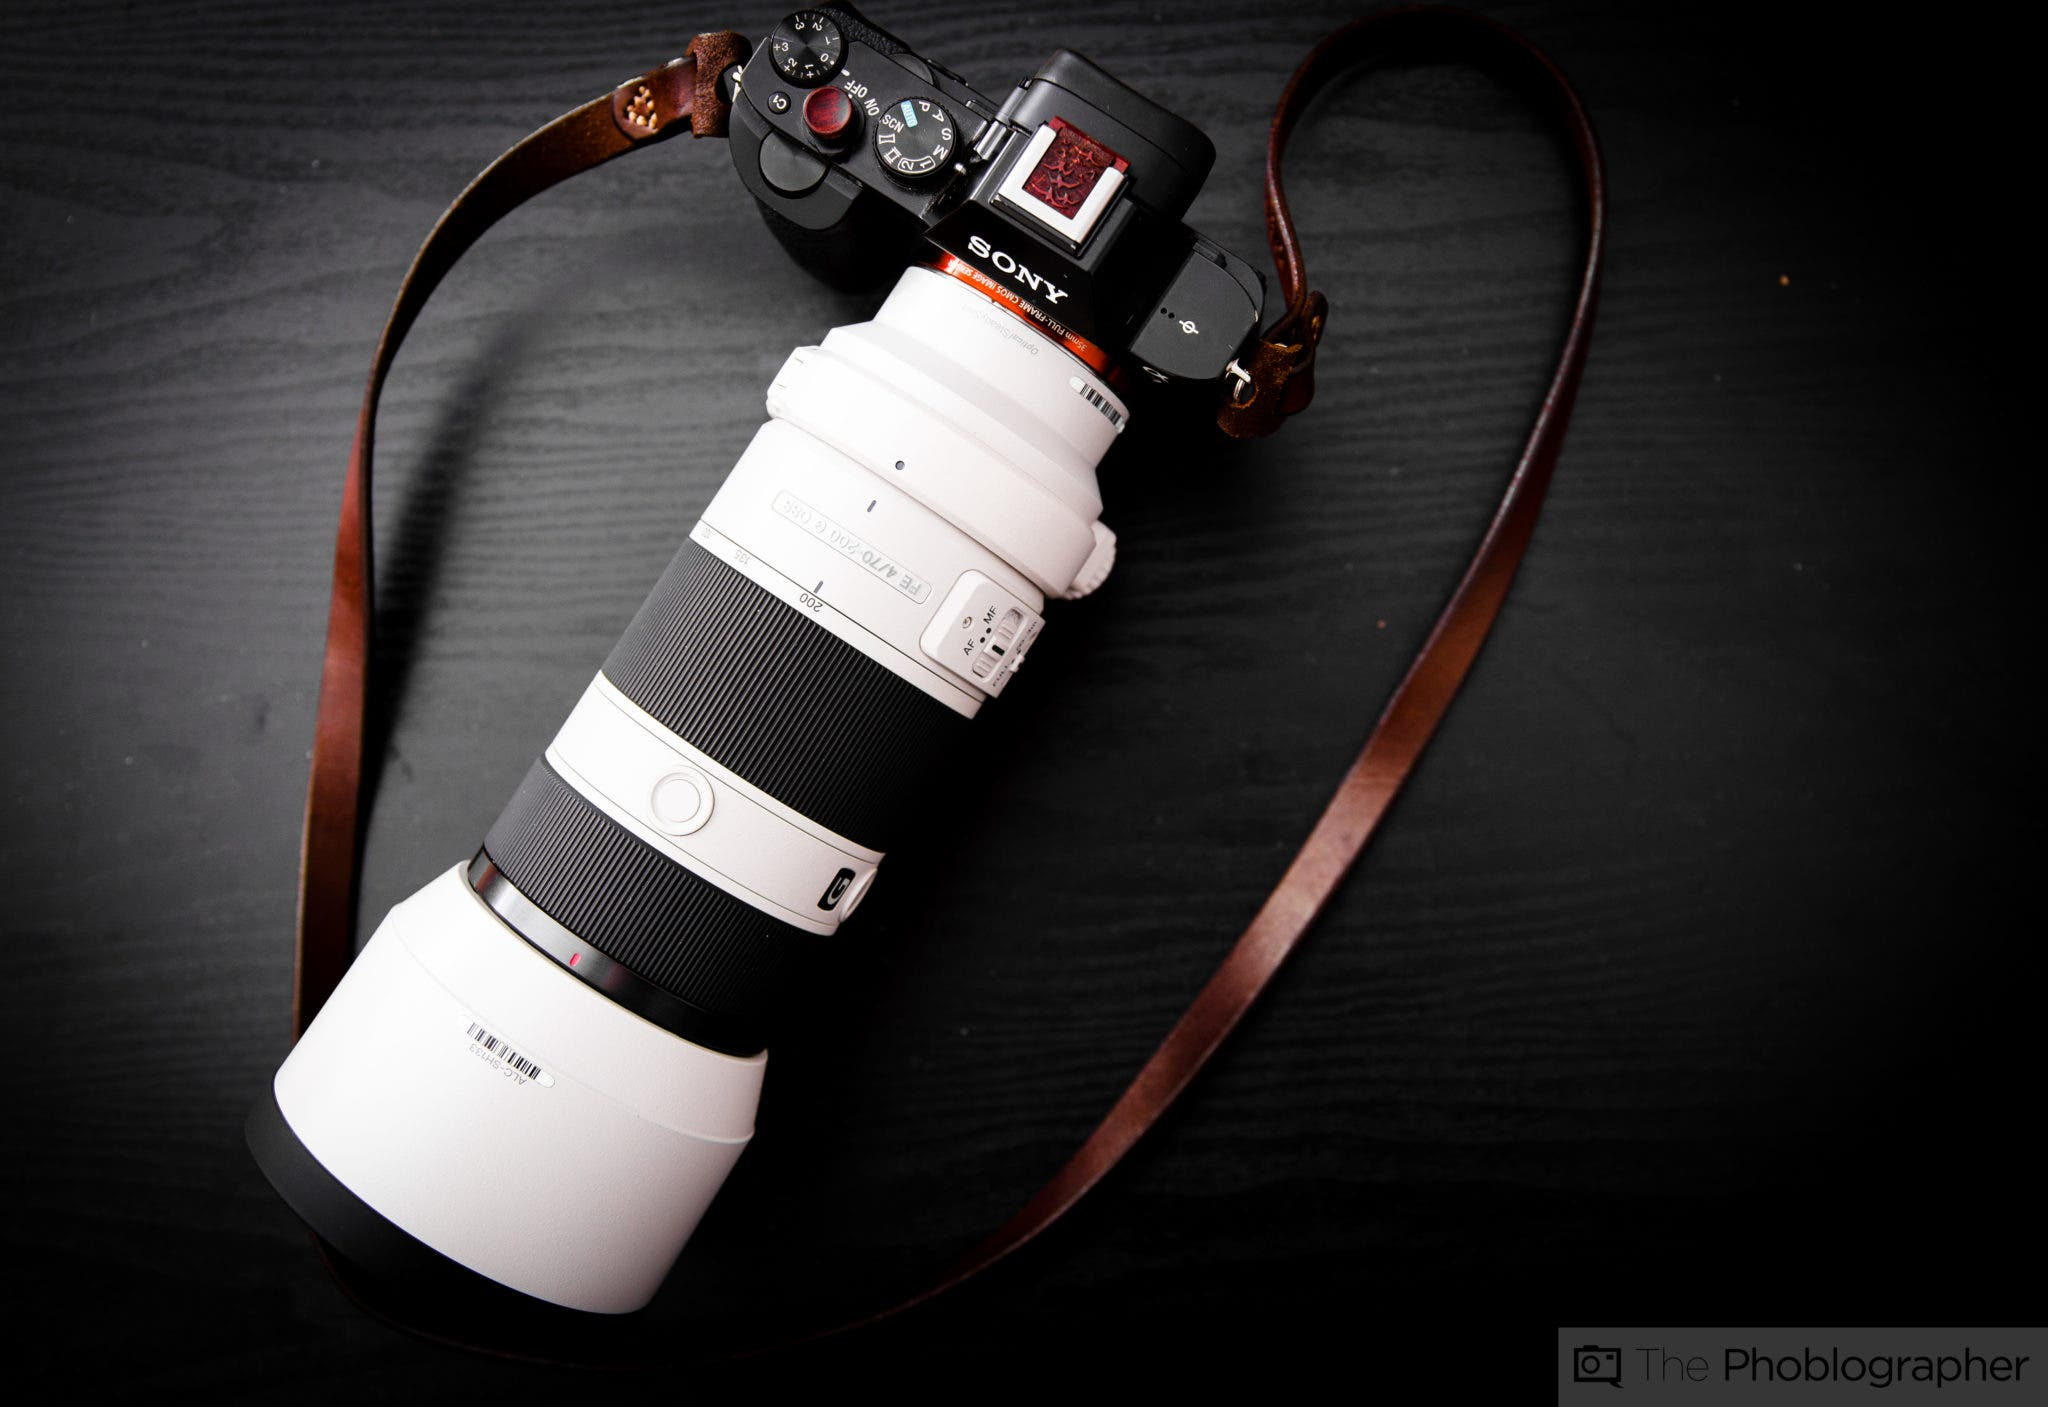 sony 70 200 f4. chris gampat the phoblographer sony 70-200mm f4 oss review product images (9 of 70 200